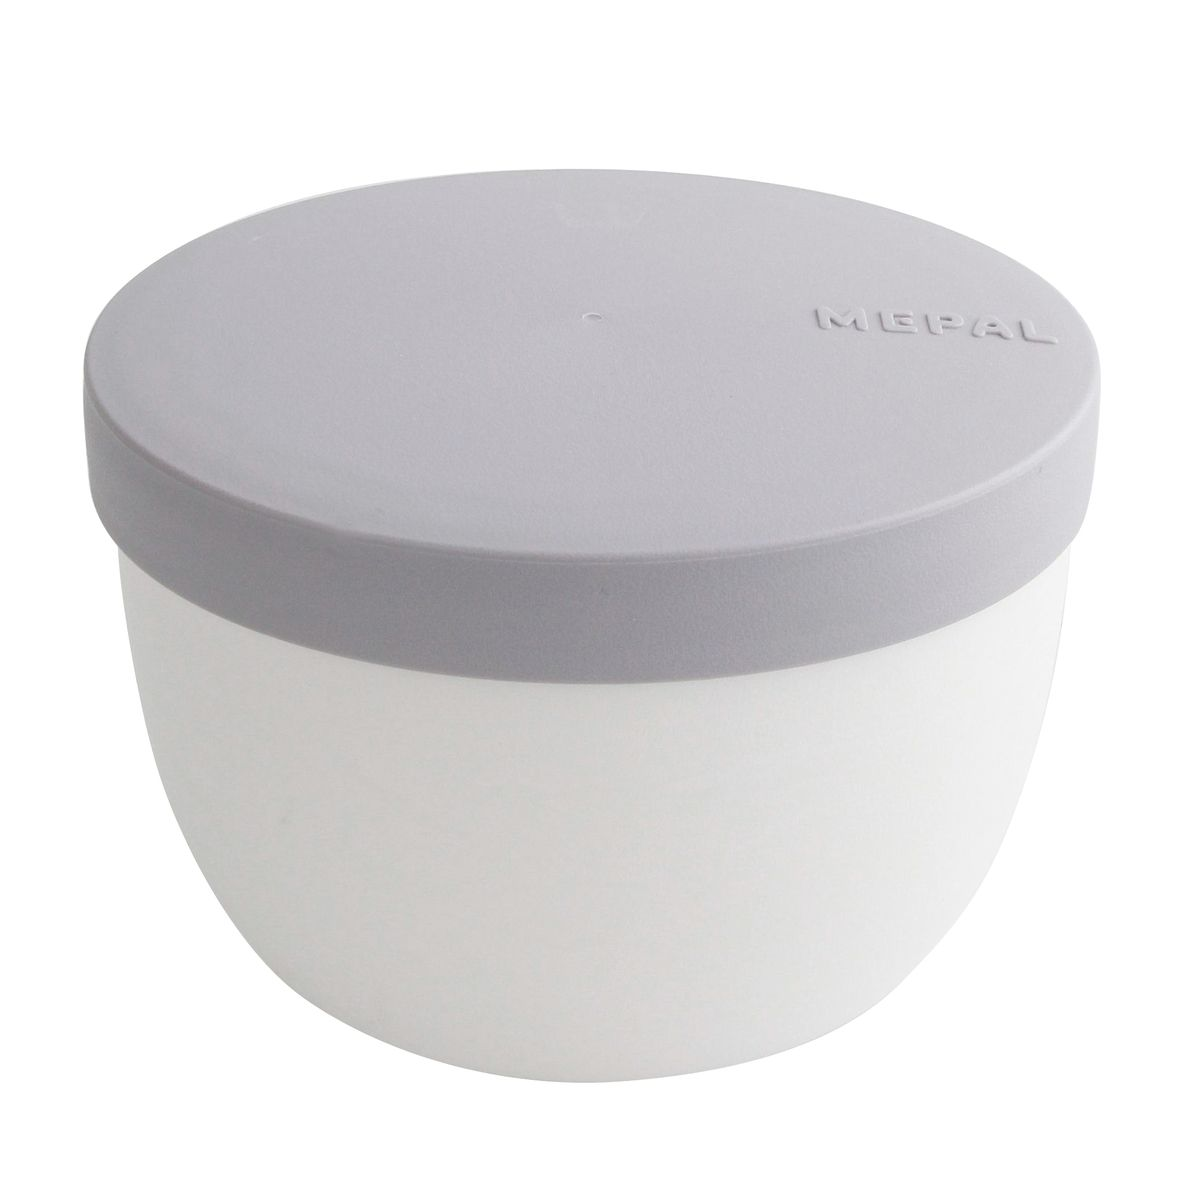 Snack pot ellipse blanc 350ml - Mepal